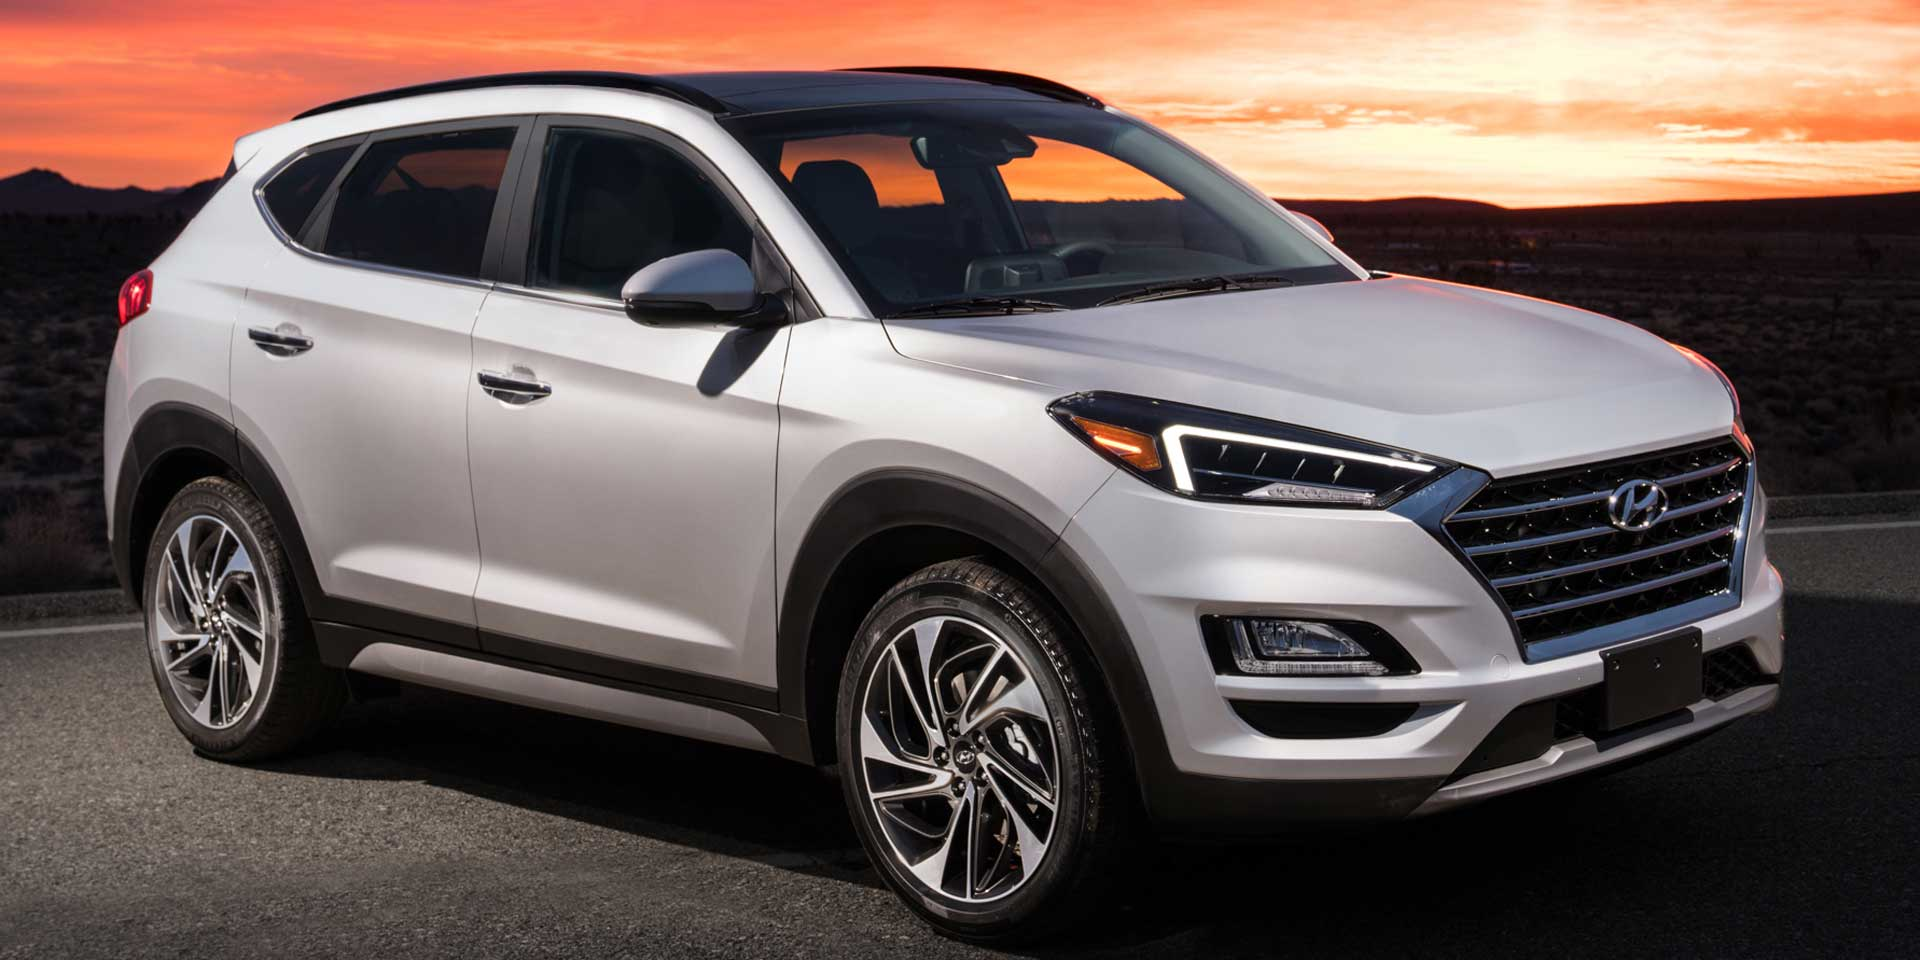 2019 - Hyundai - Tucson - Vehicles on Display | Chicago ...